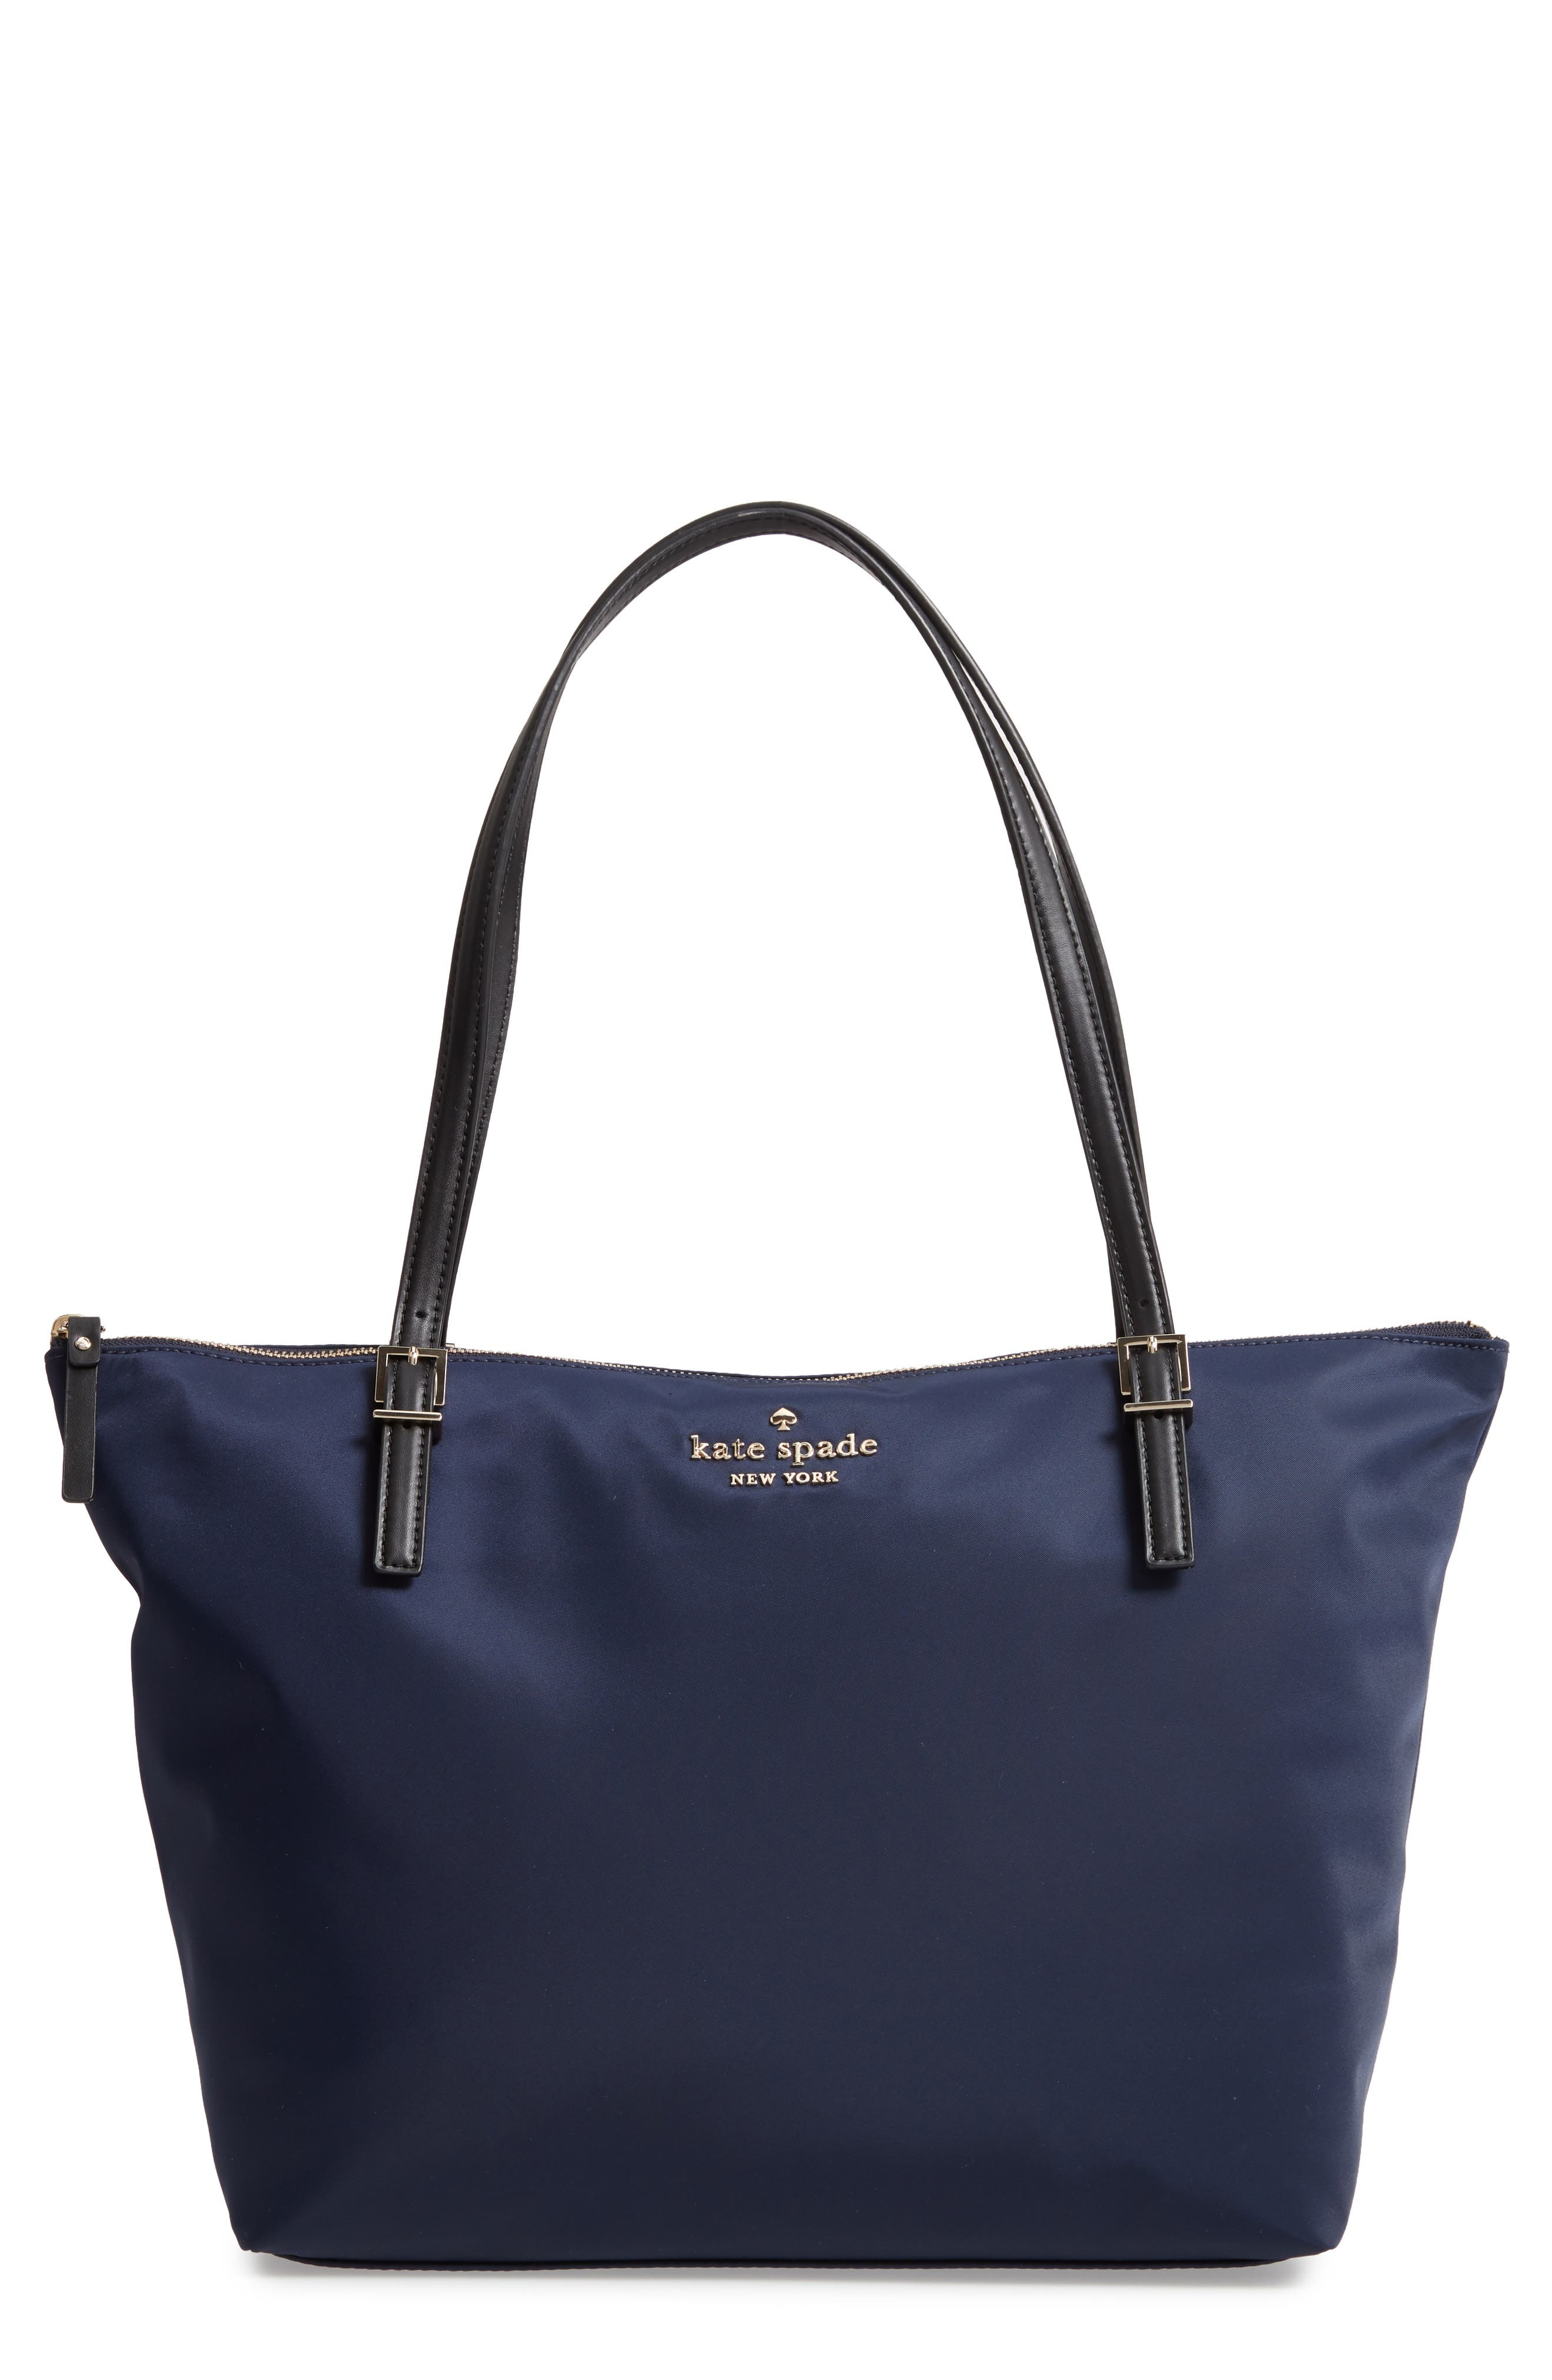 KATE SPADE NEW YORK,                             watson lane maya nylon tote,                             Main thumbnail 1, color,                             RICH NAVY